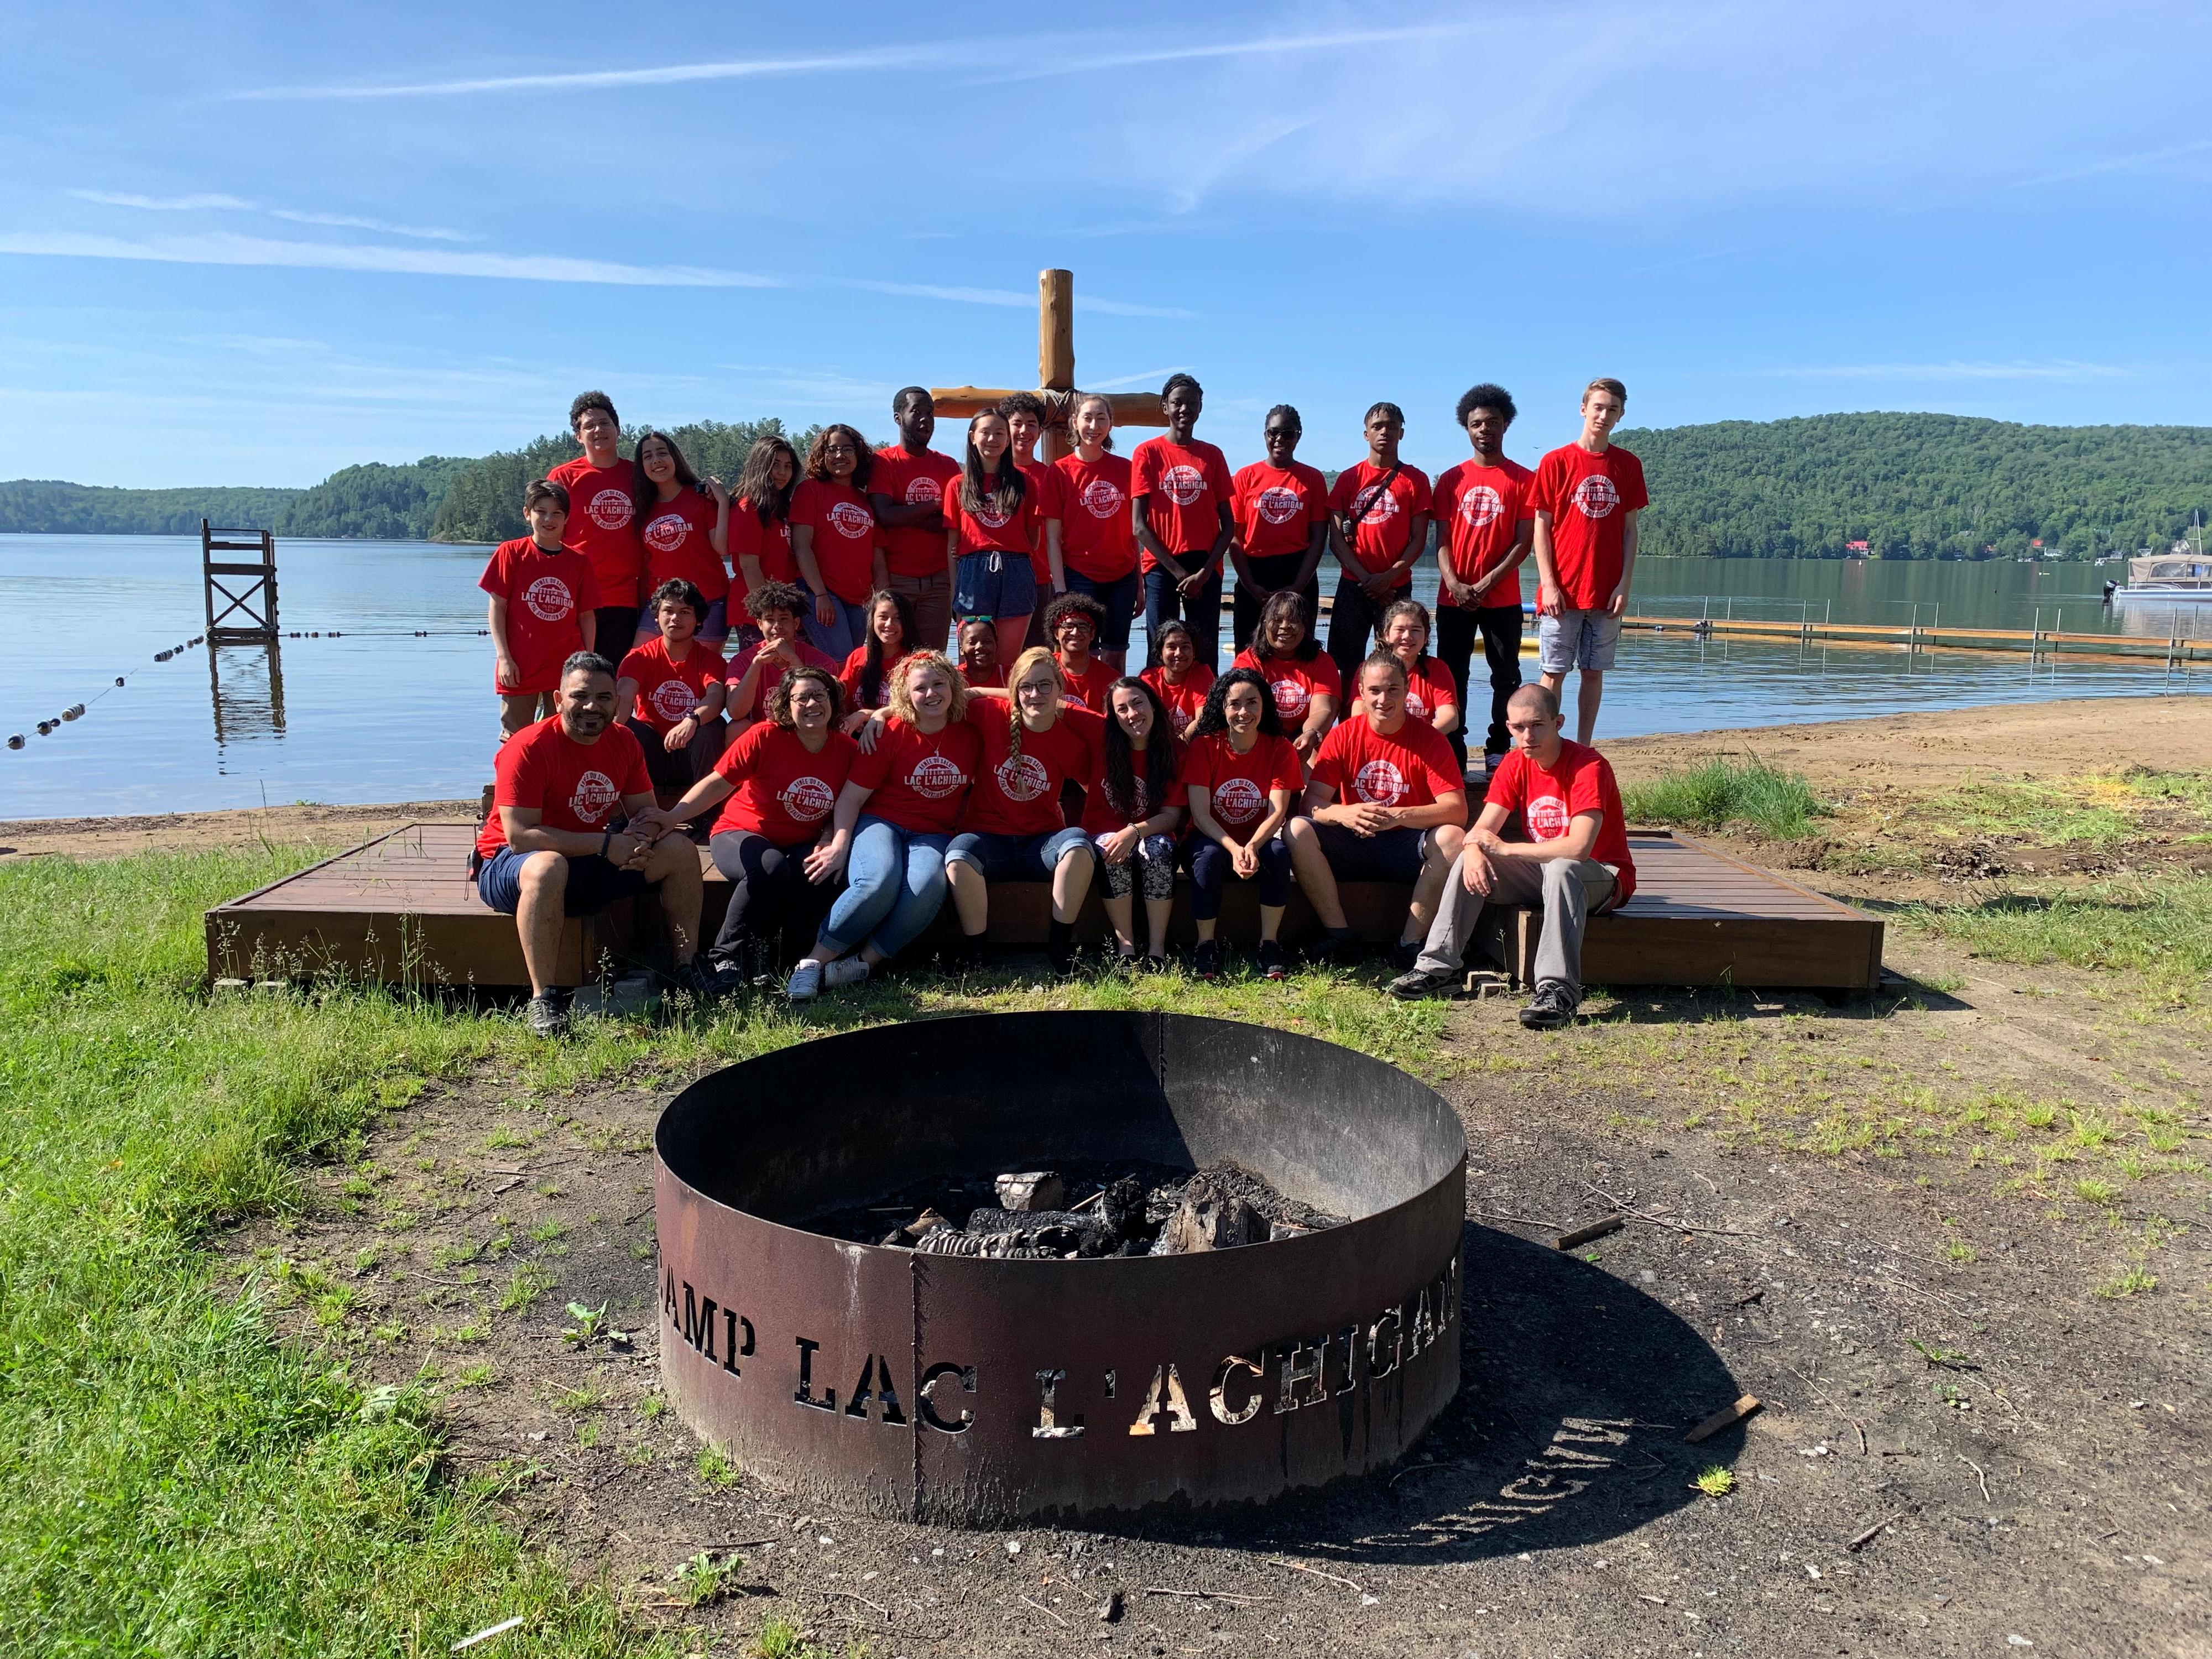 Group photo of staff from Camp Lac L'Achigan in front of a lake with a fire pit in front.